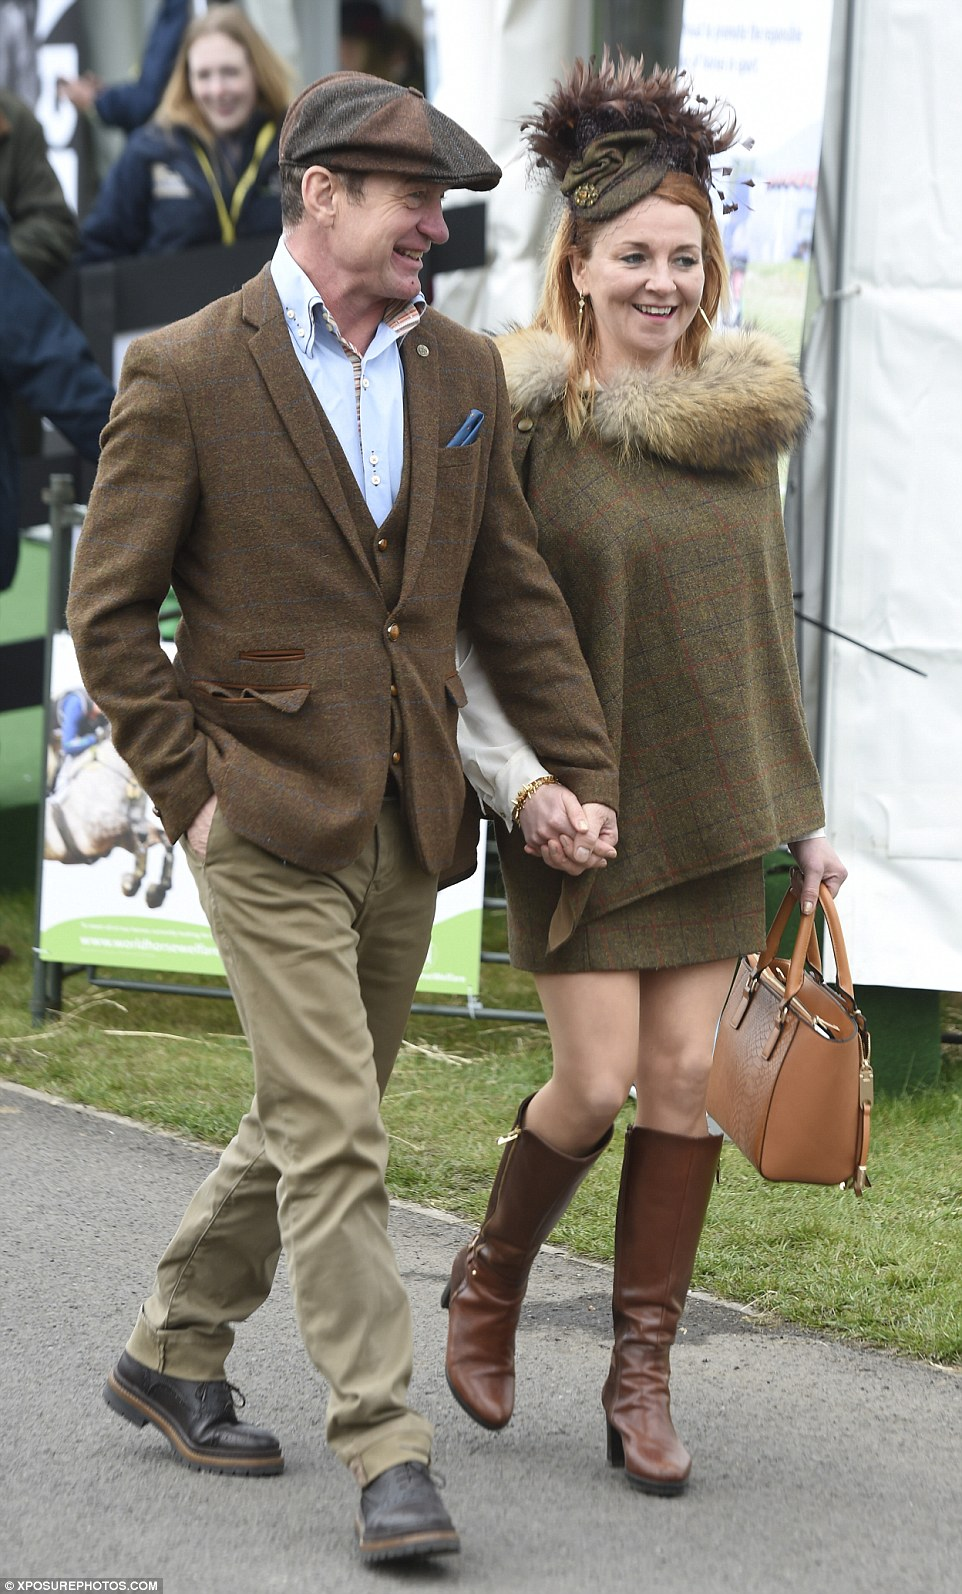 A co-ordinated couple looked the part in perfectly matching outfits